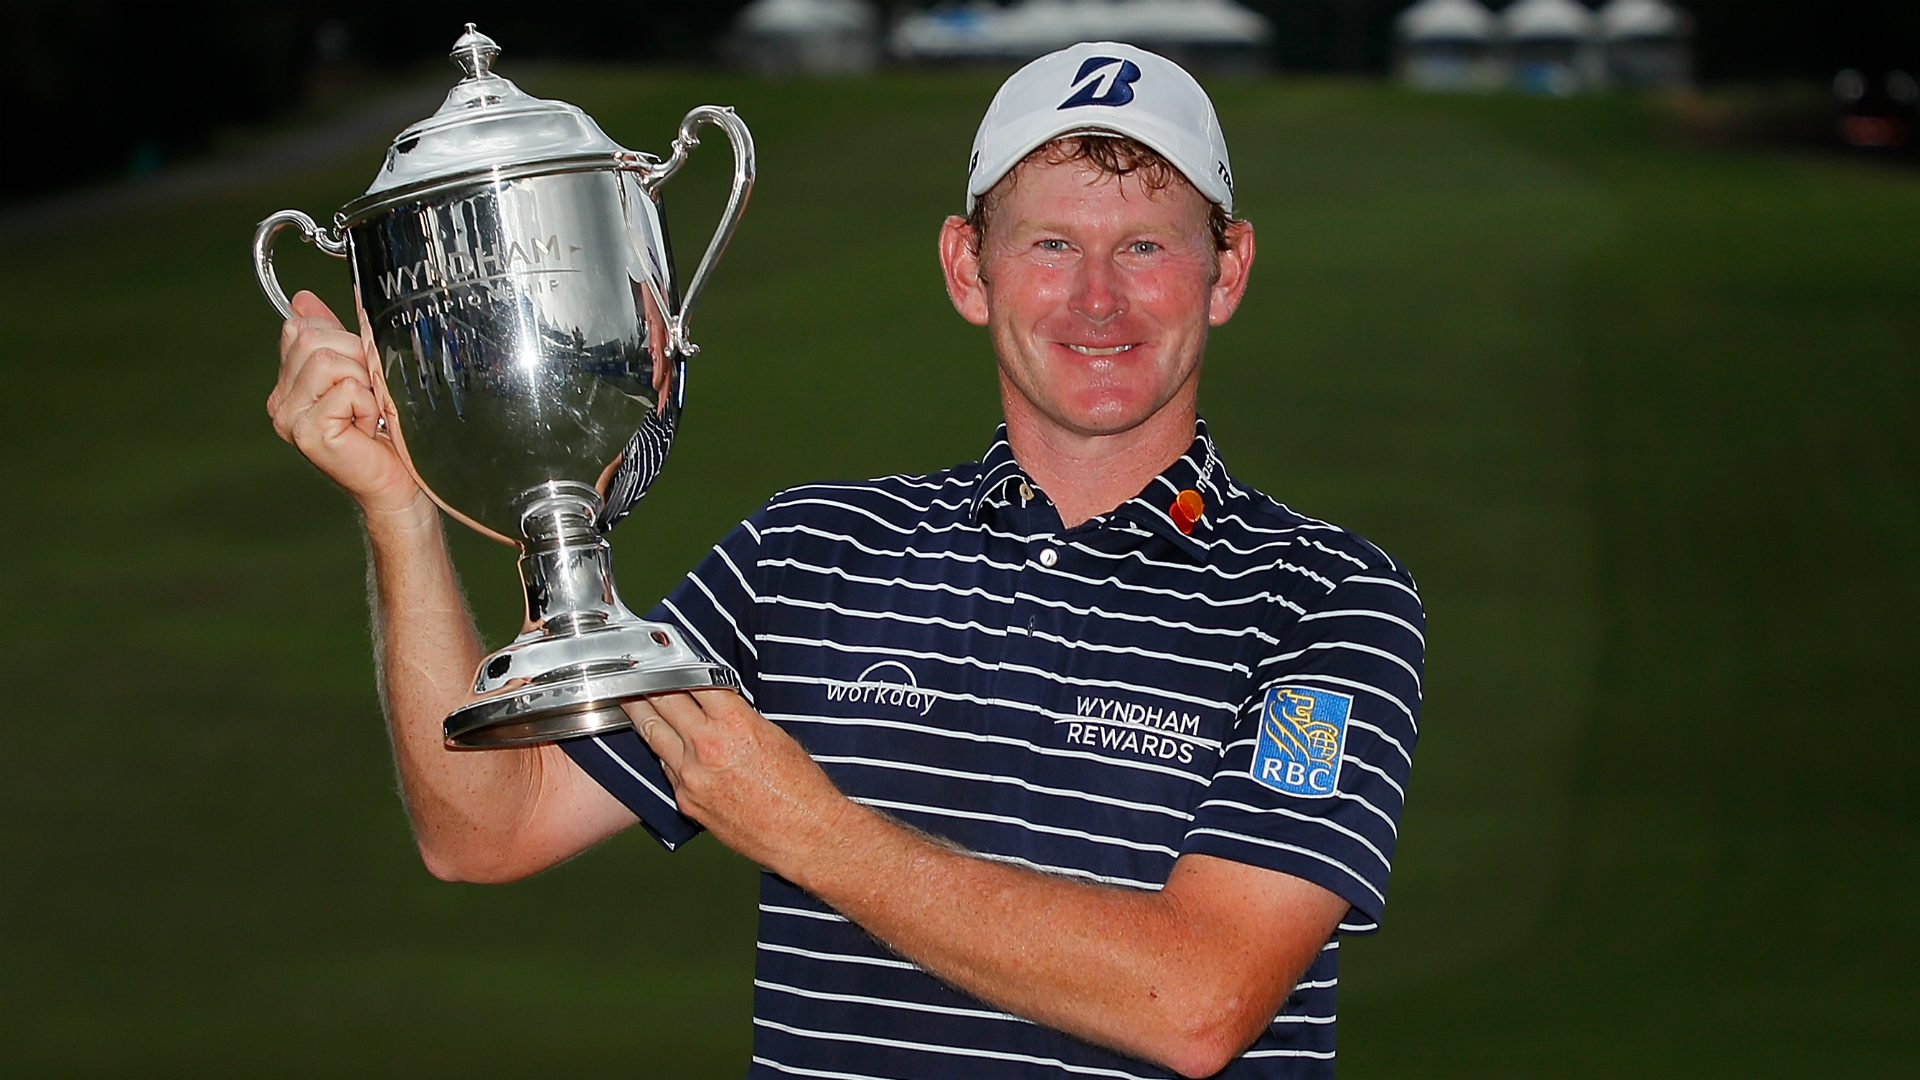 Snedeker ends PGA Tour drought with Wyndham Championship win